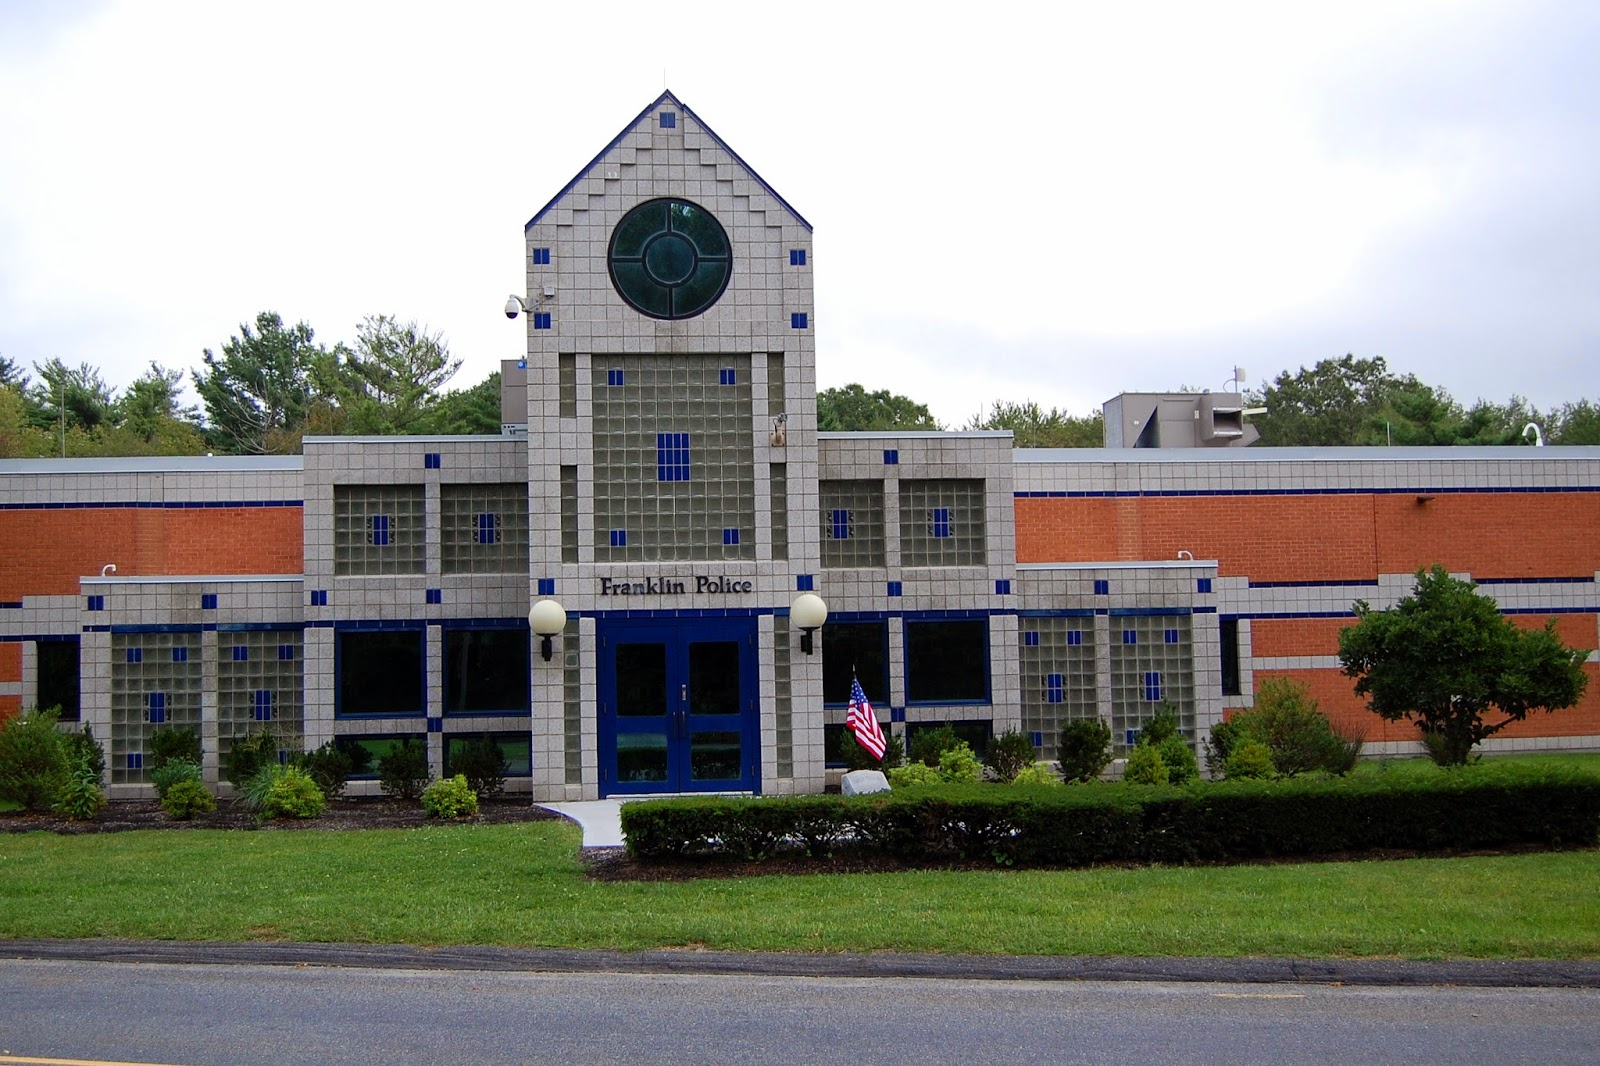 Franklin Police Station, Panther Way